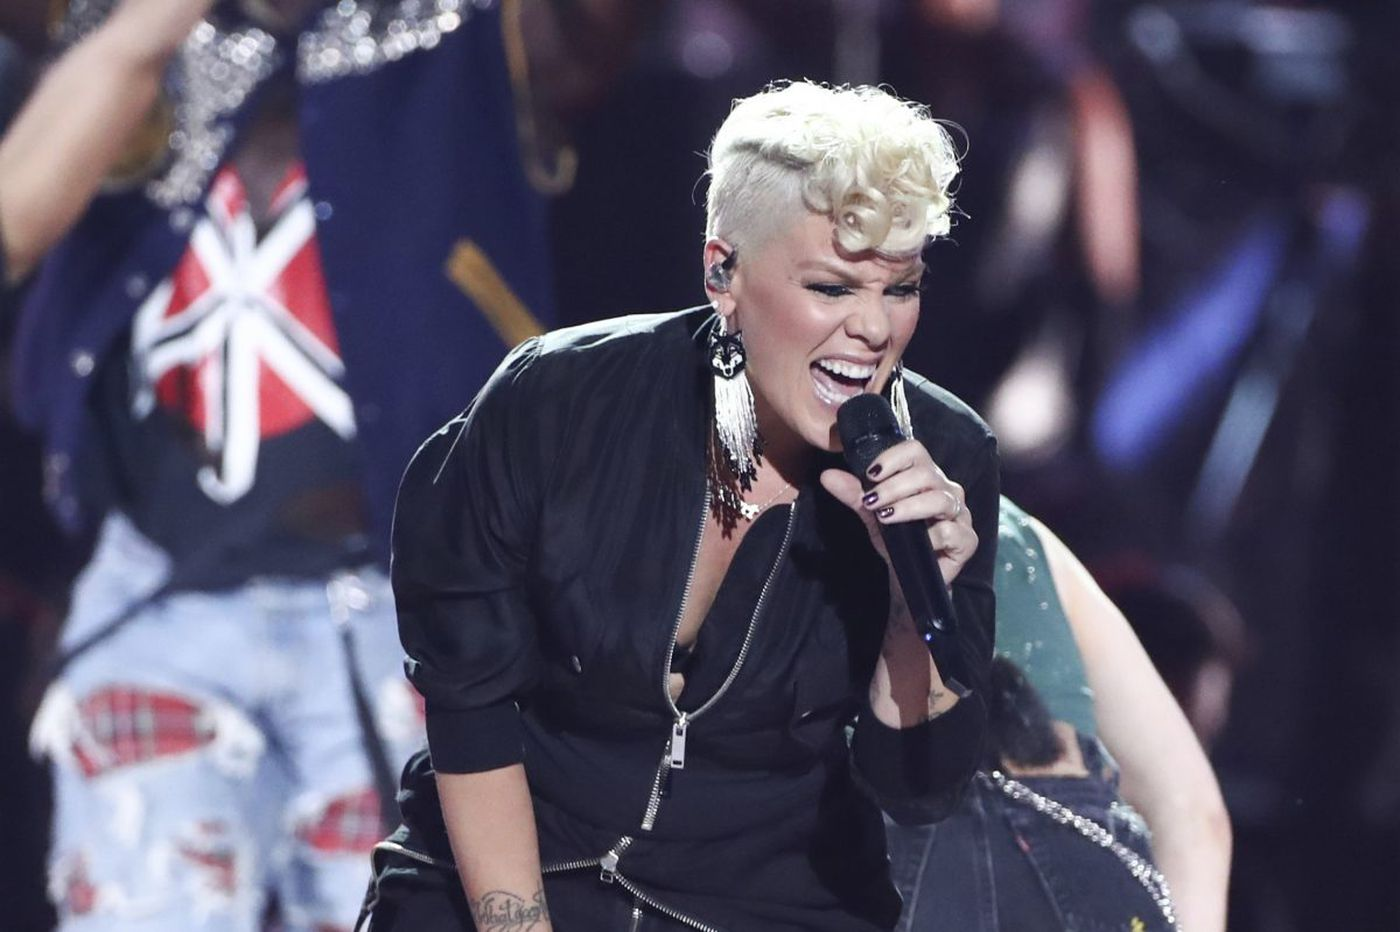 Doylestown's Pink to perform National Anthem at Super Bowl LII